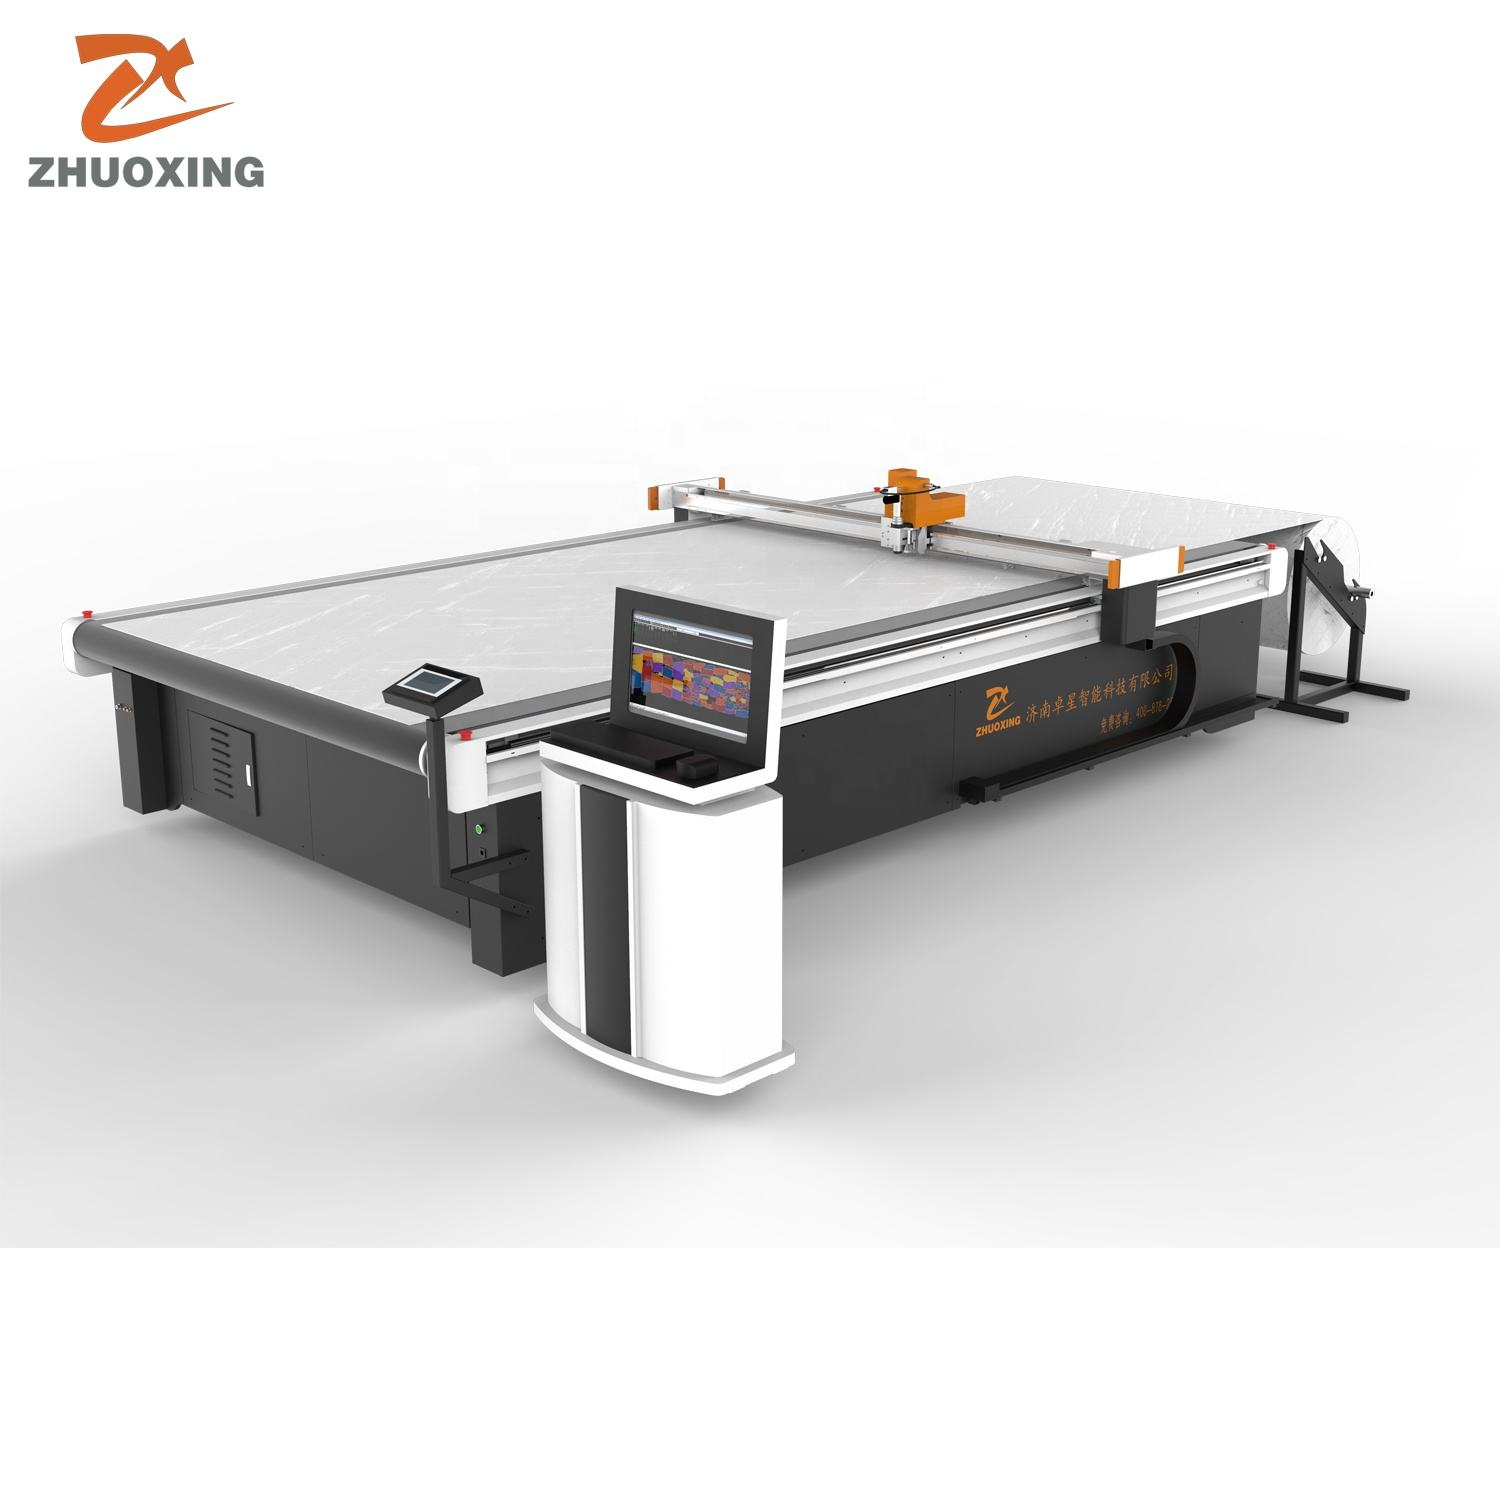 apparel textile cutting machine for garment customization production and pattern making